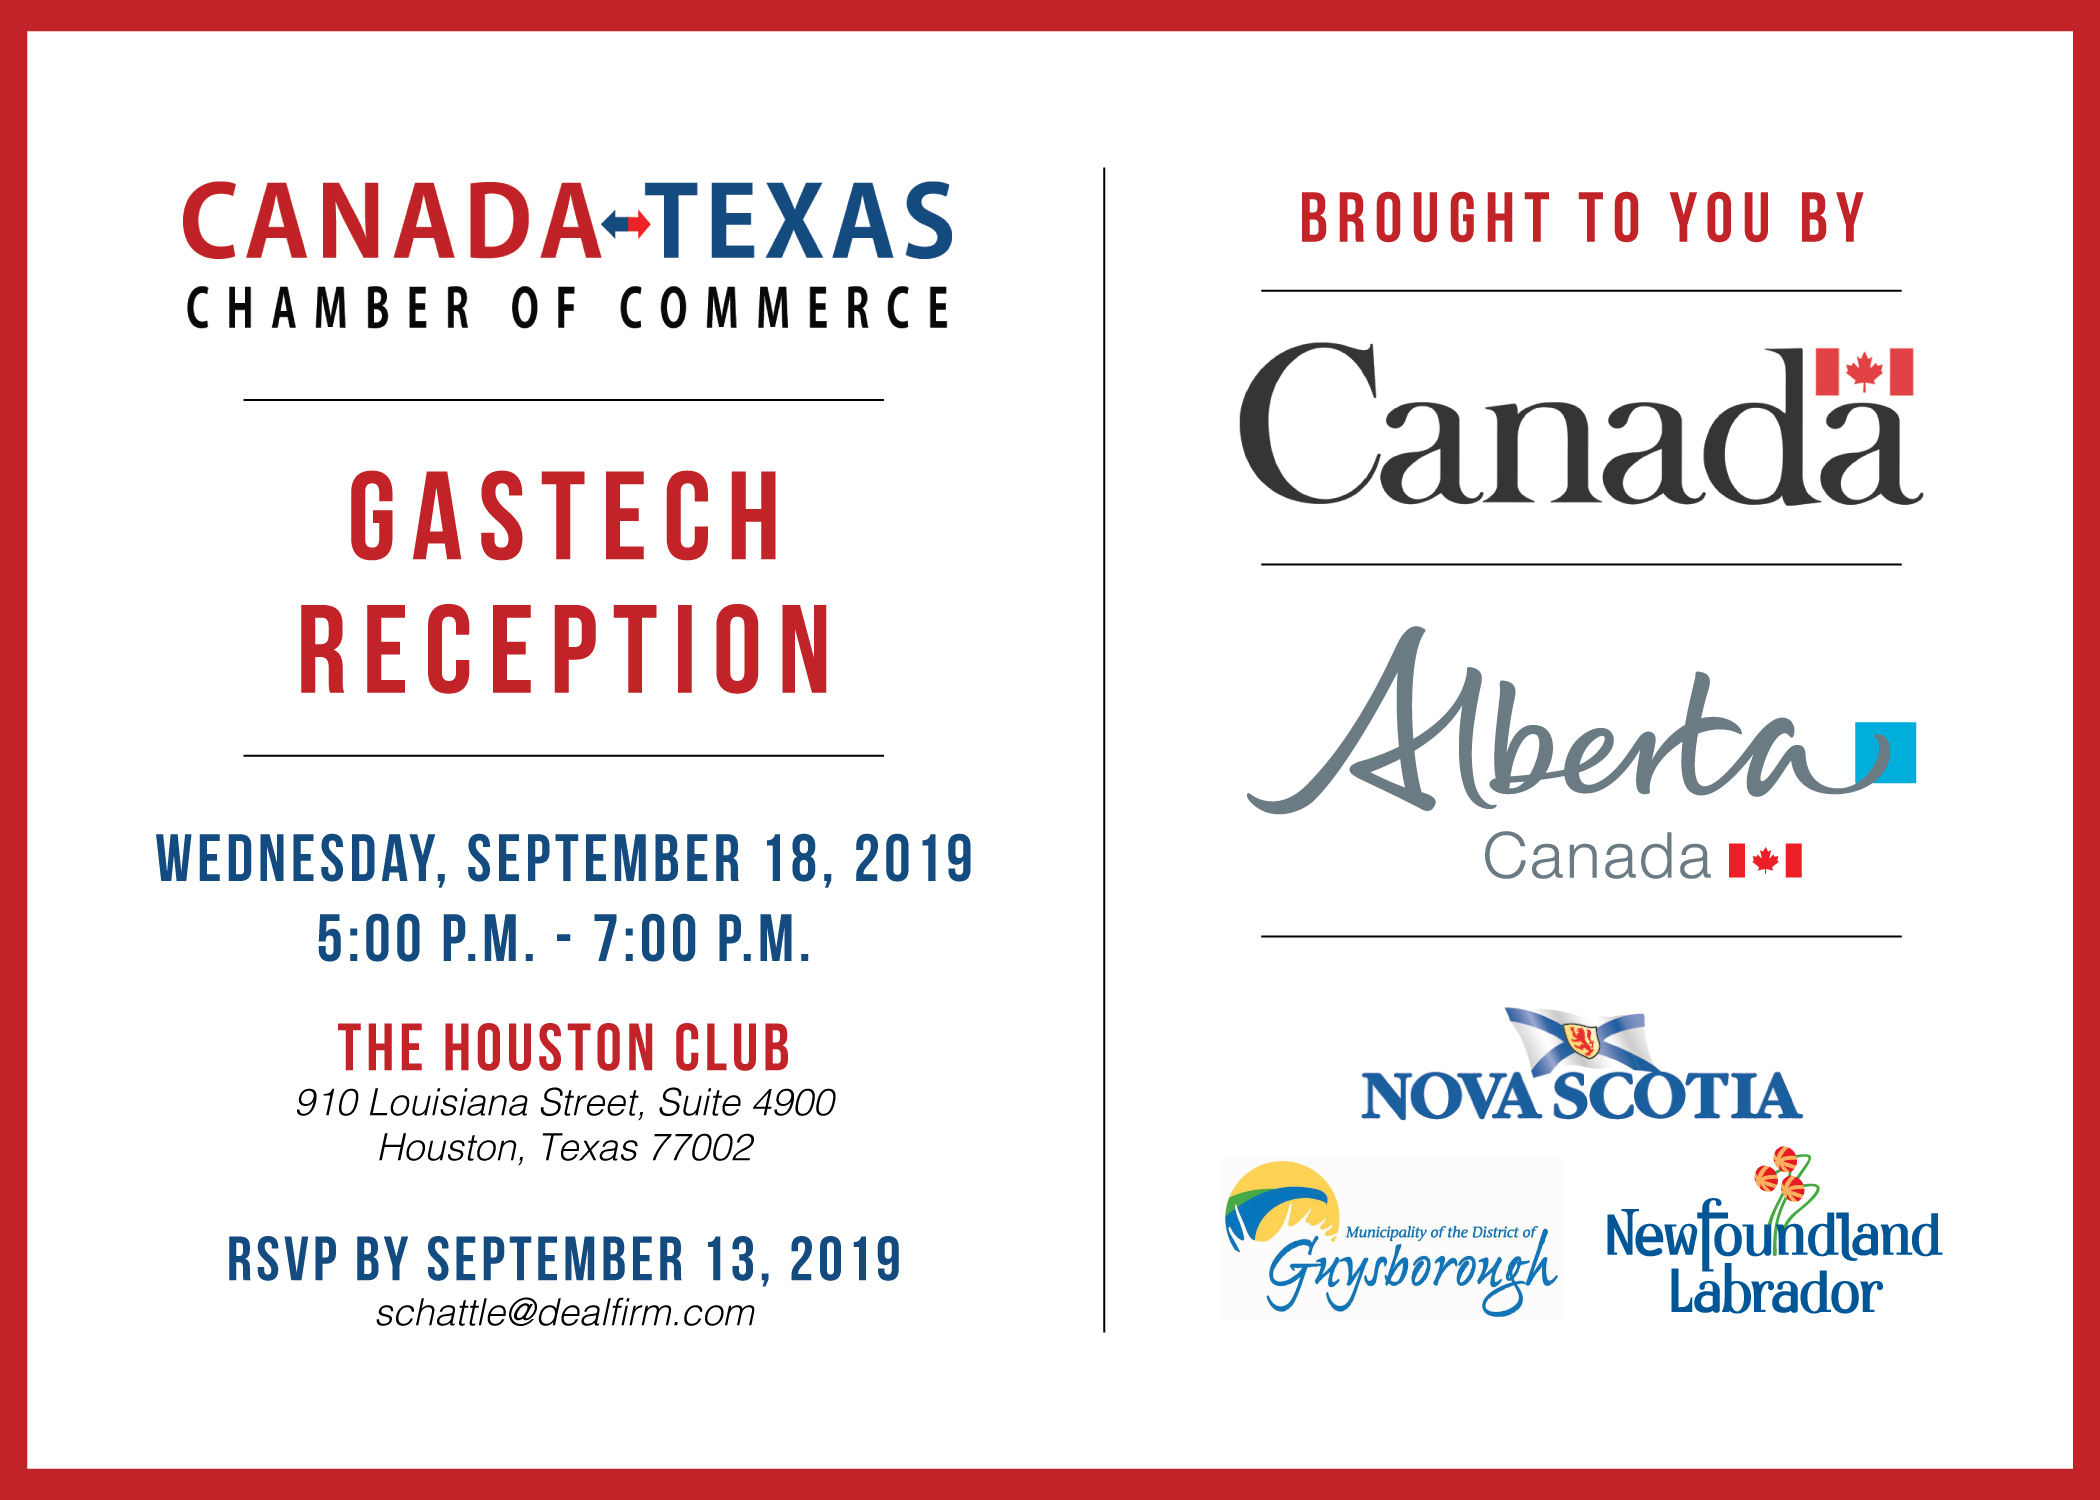 Home - Canada-Texas Chamber of Commerce